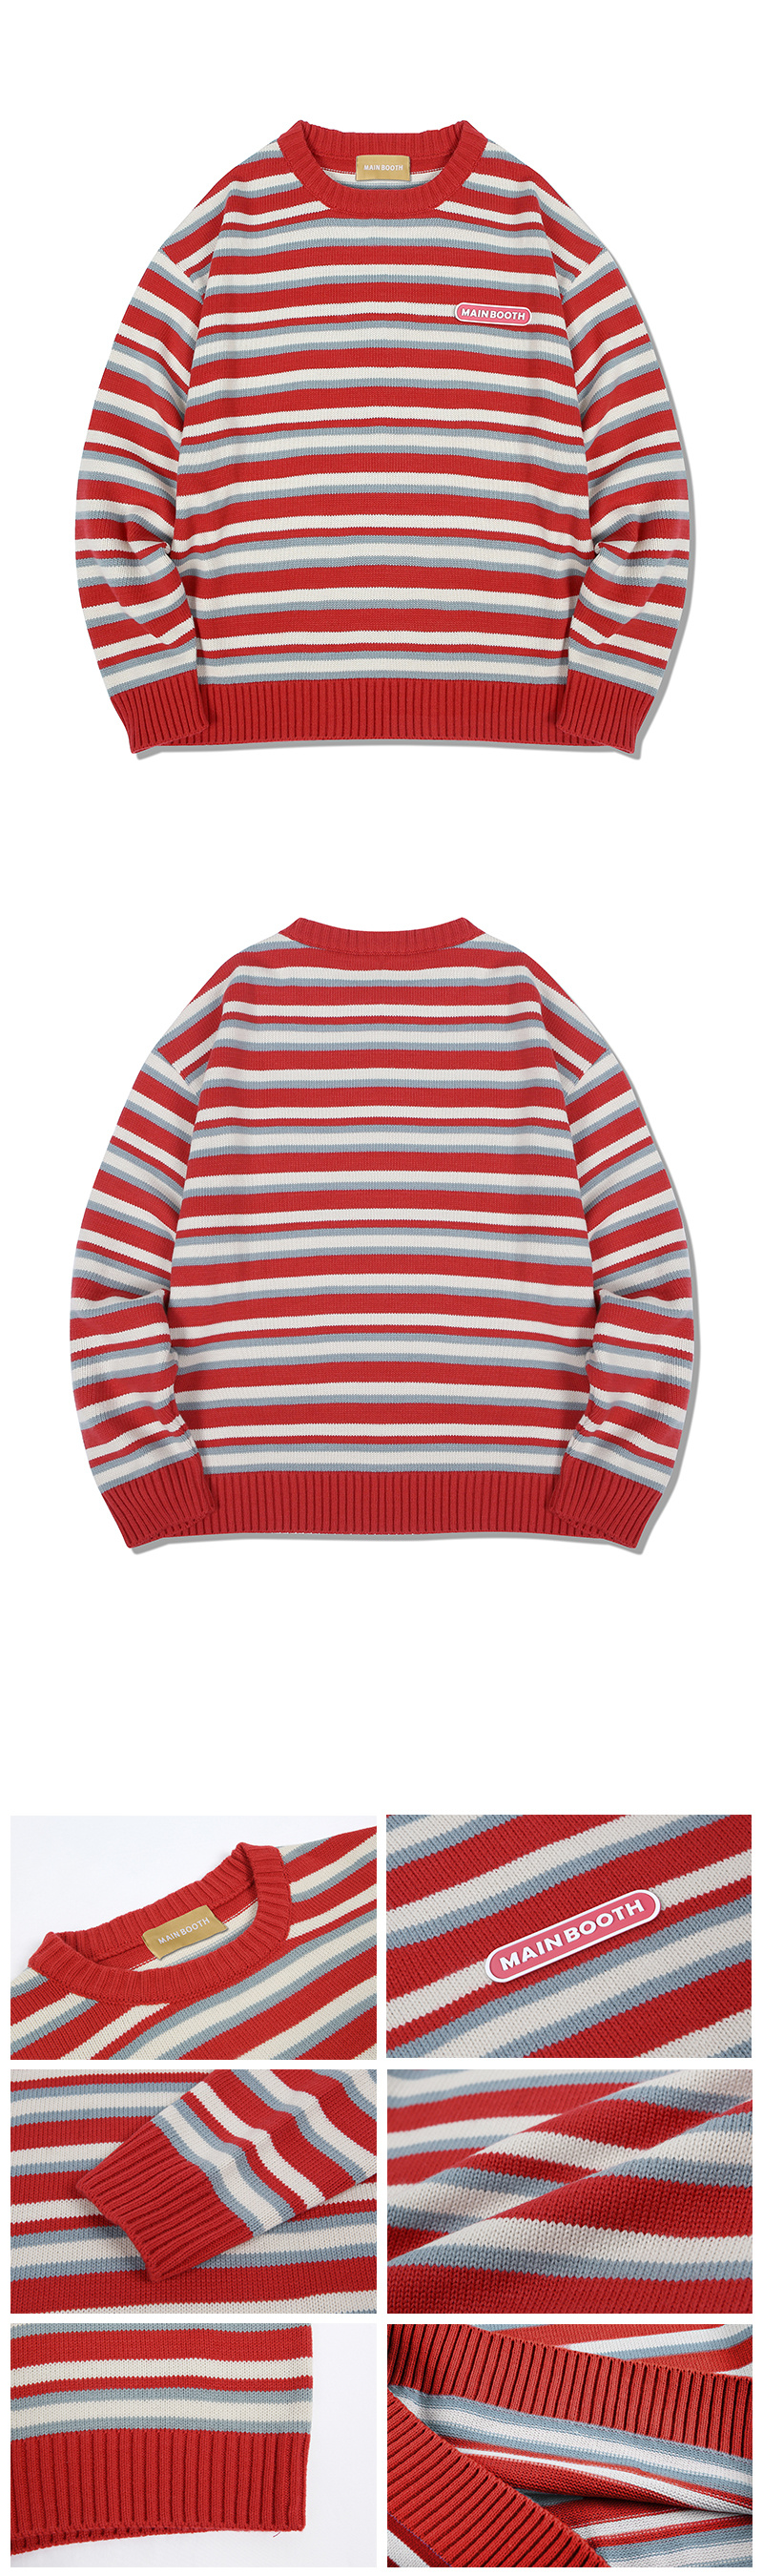 메인부스(MAINBOOTH) Jellybean Sweater(RED)